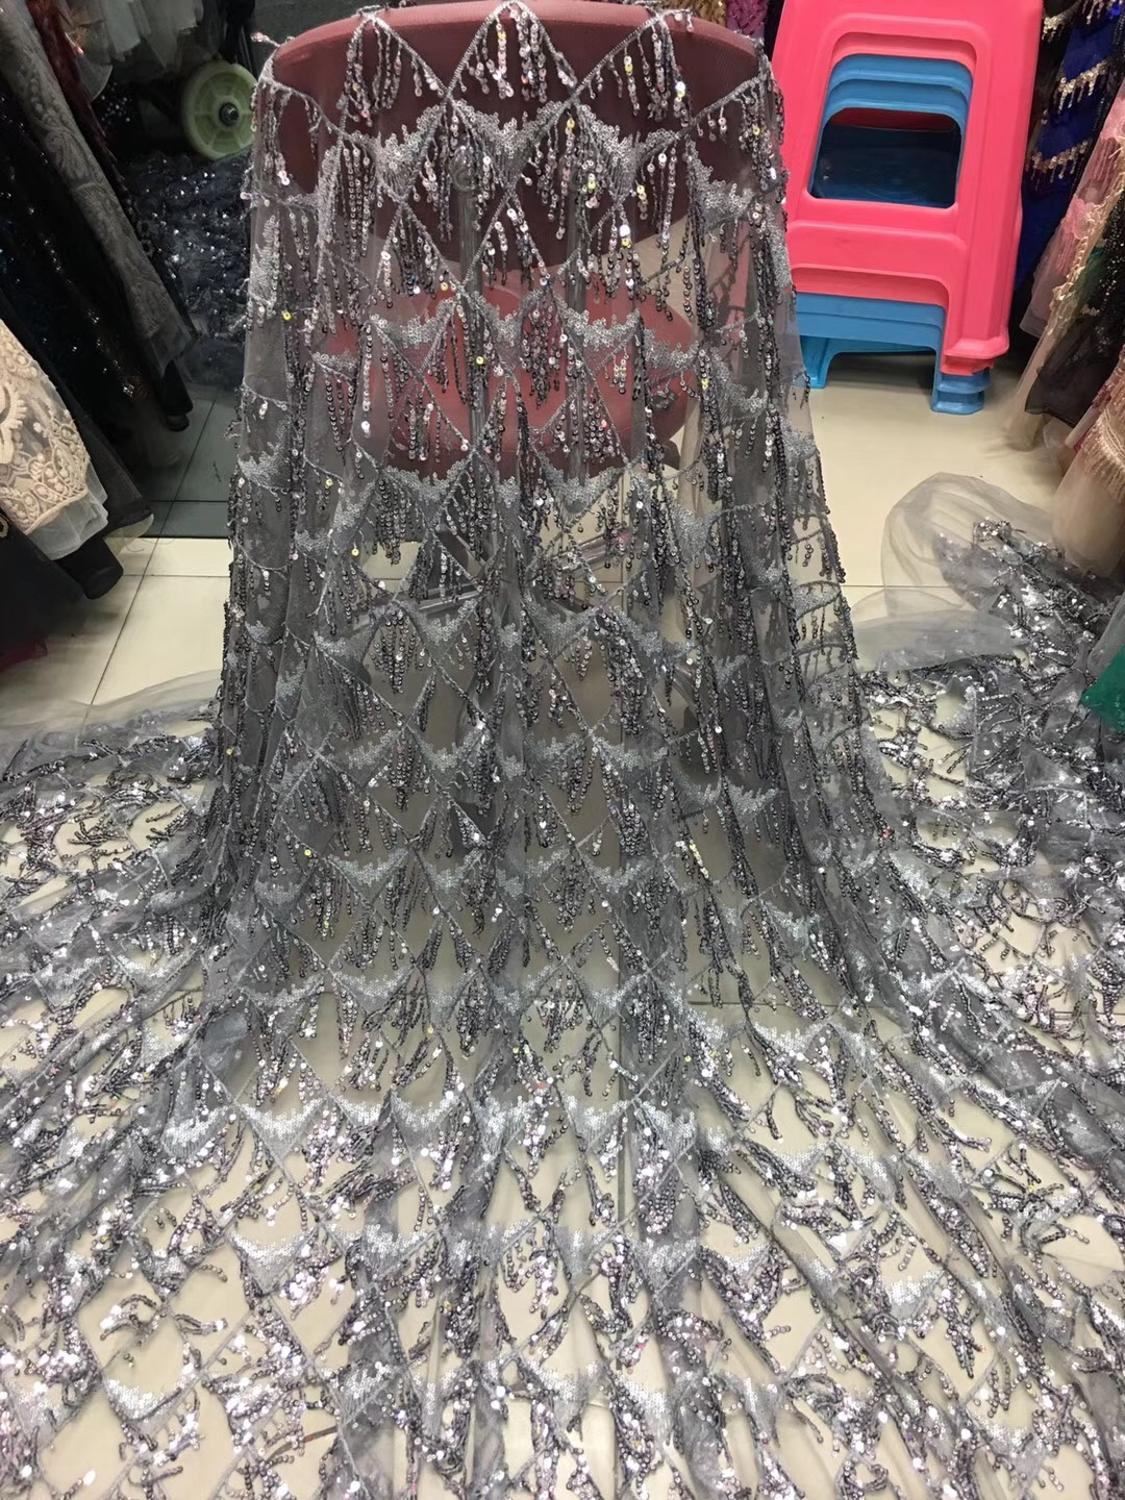 2019 Latest French Nigerian Laces Fabrics High Quality Tulle African Laces Fabric Wedding African French Tulle Lace DYS197 in Lace from Home Garden